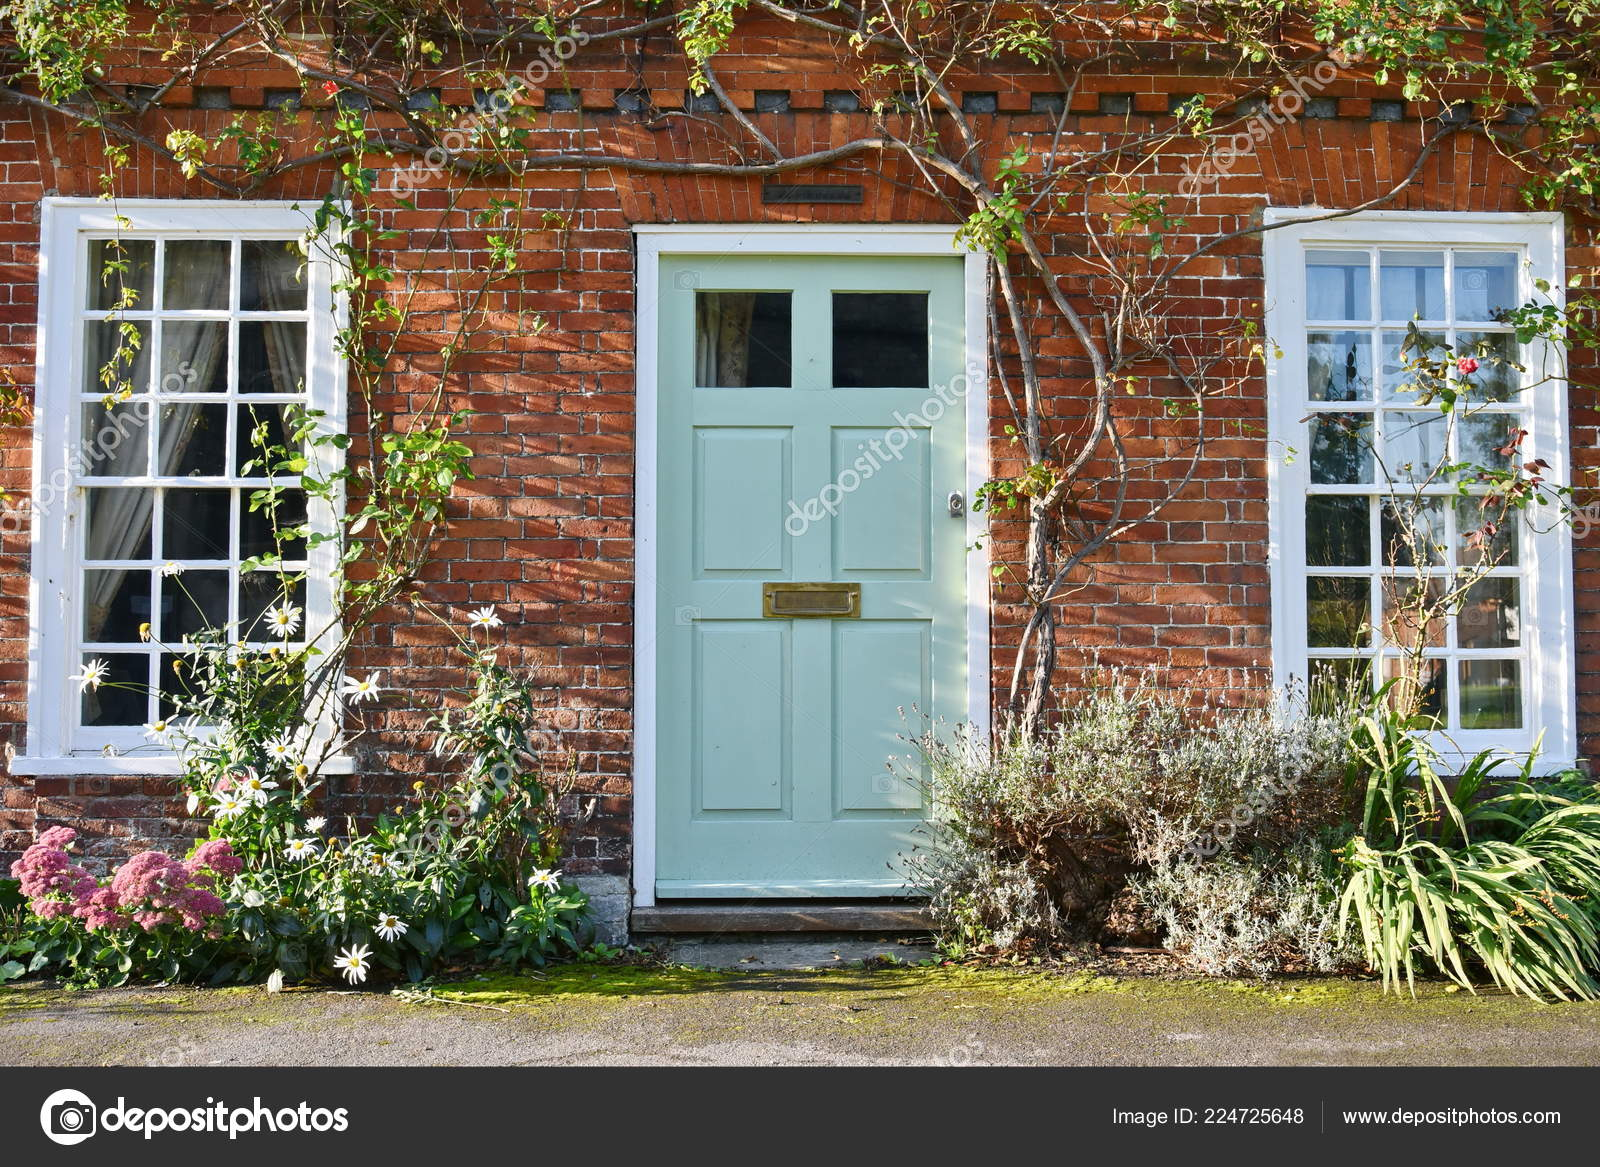 View Beautiful House Exterior Front Door Seen Street English Town Stock Photo Image By C 1000words 224725648